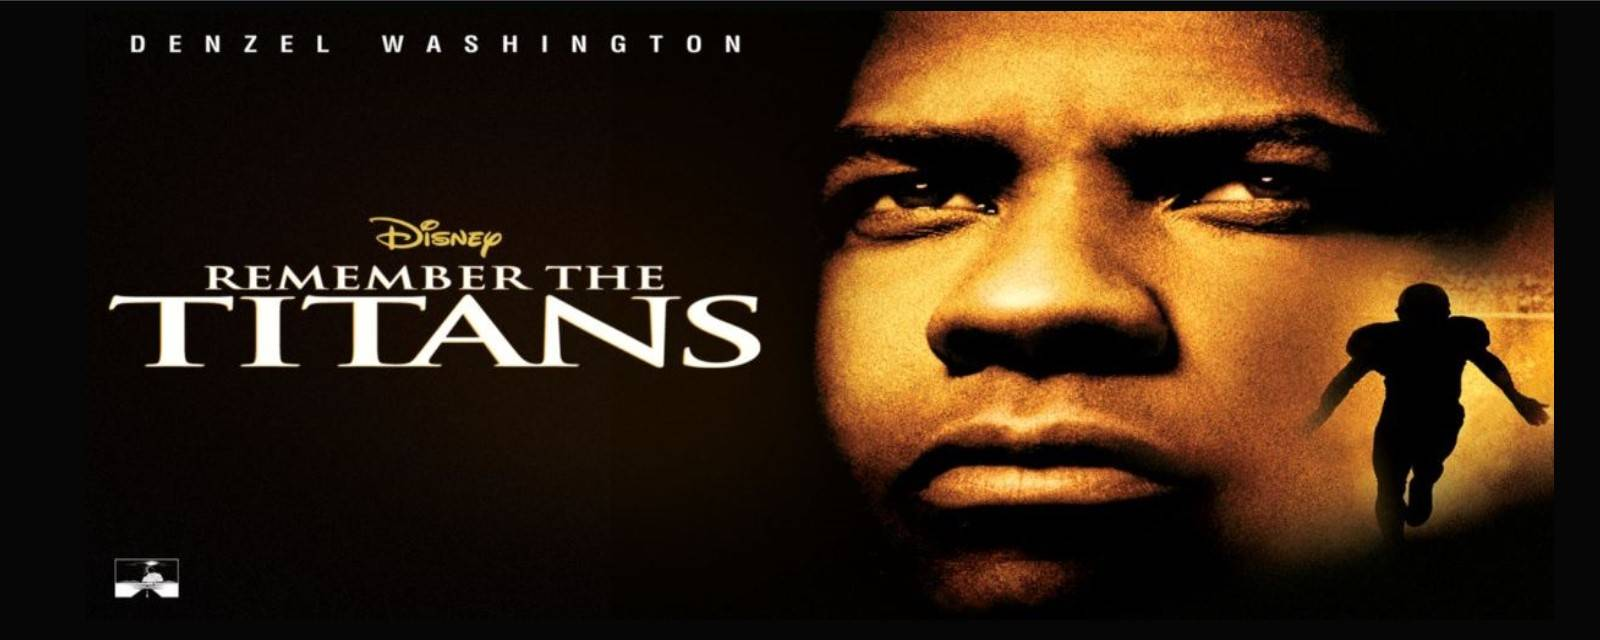 Remember the Titans image